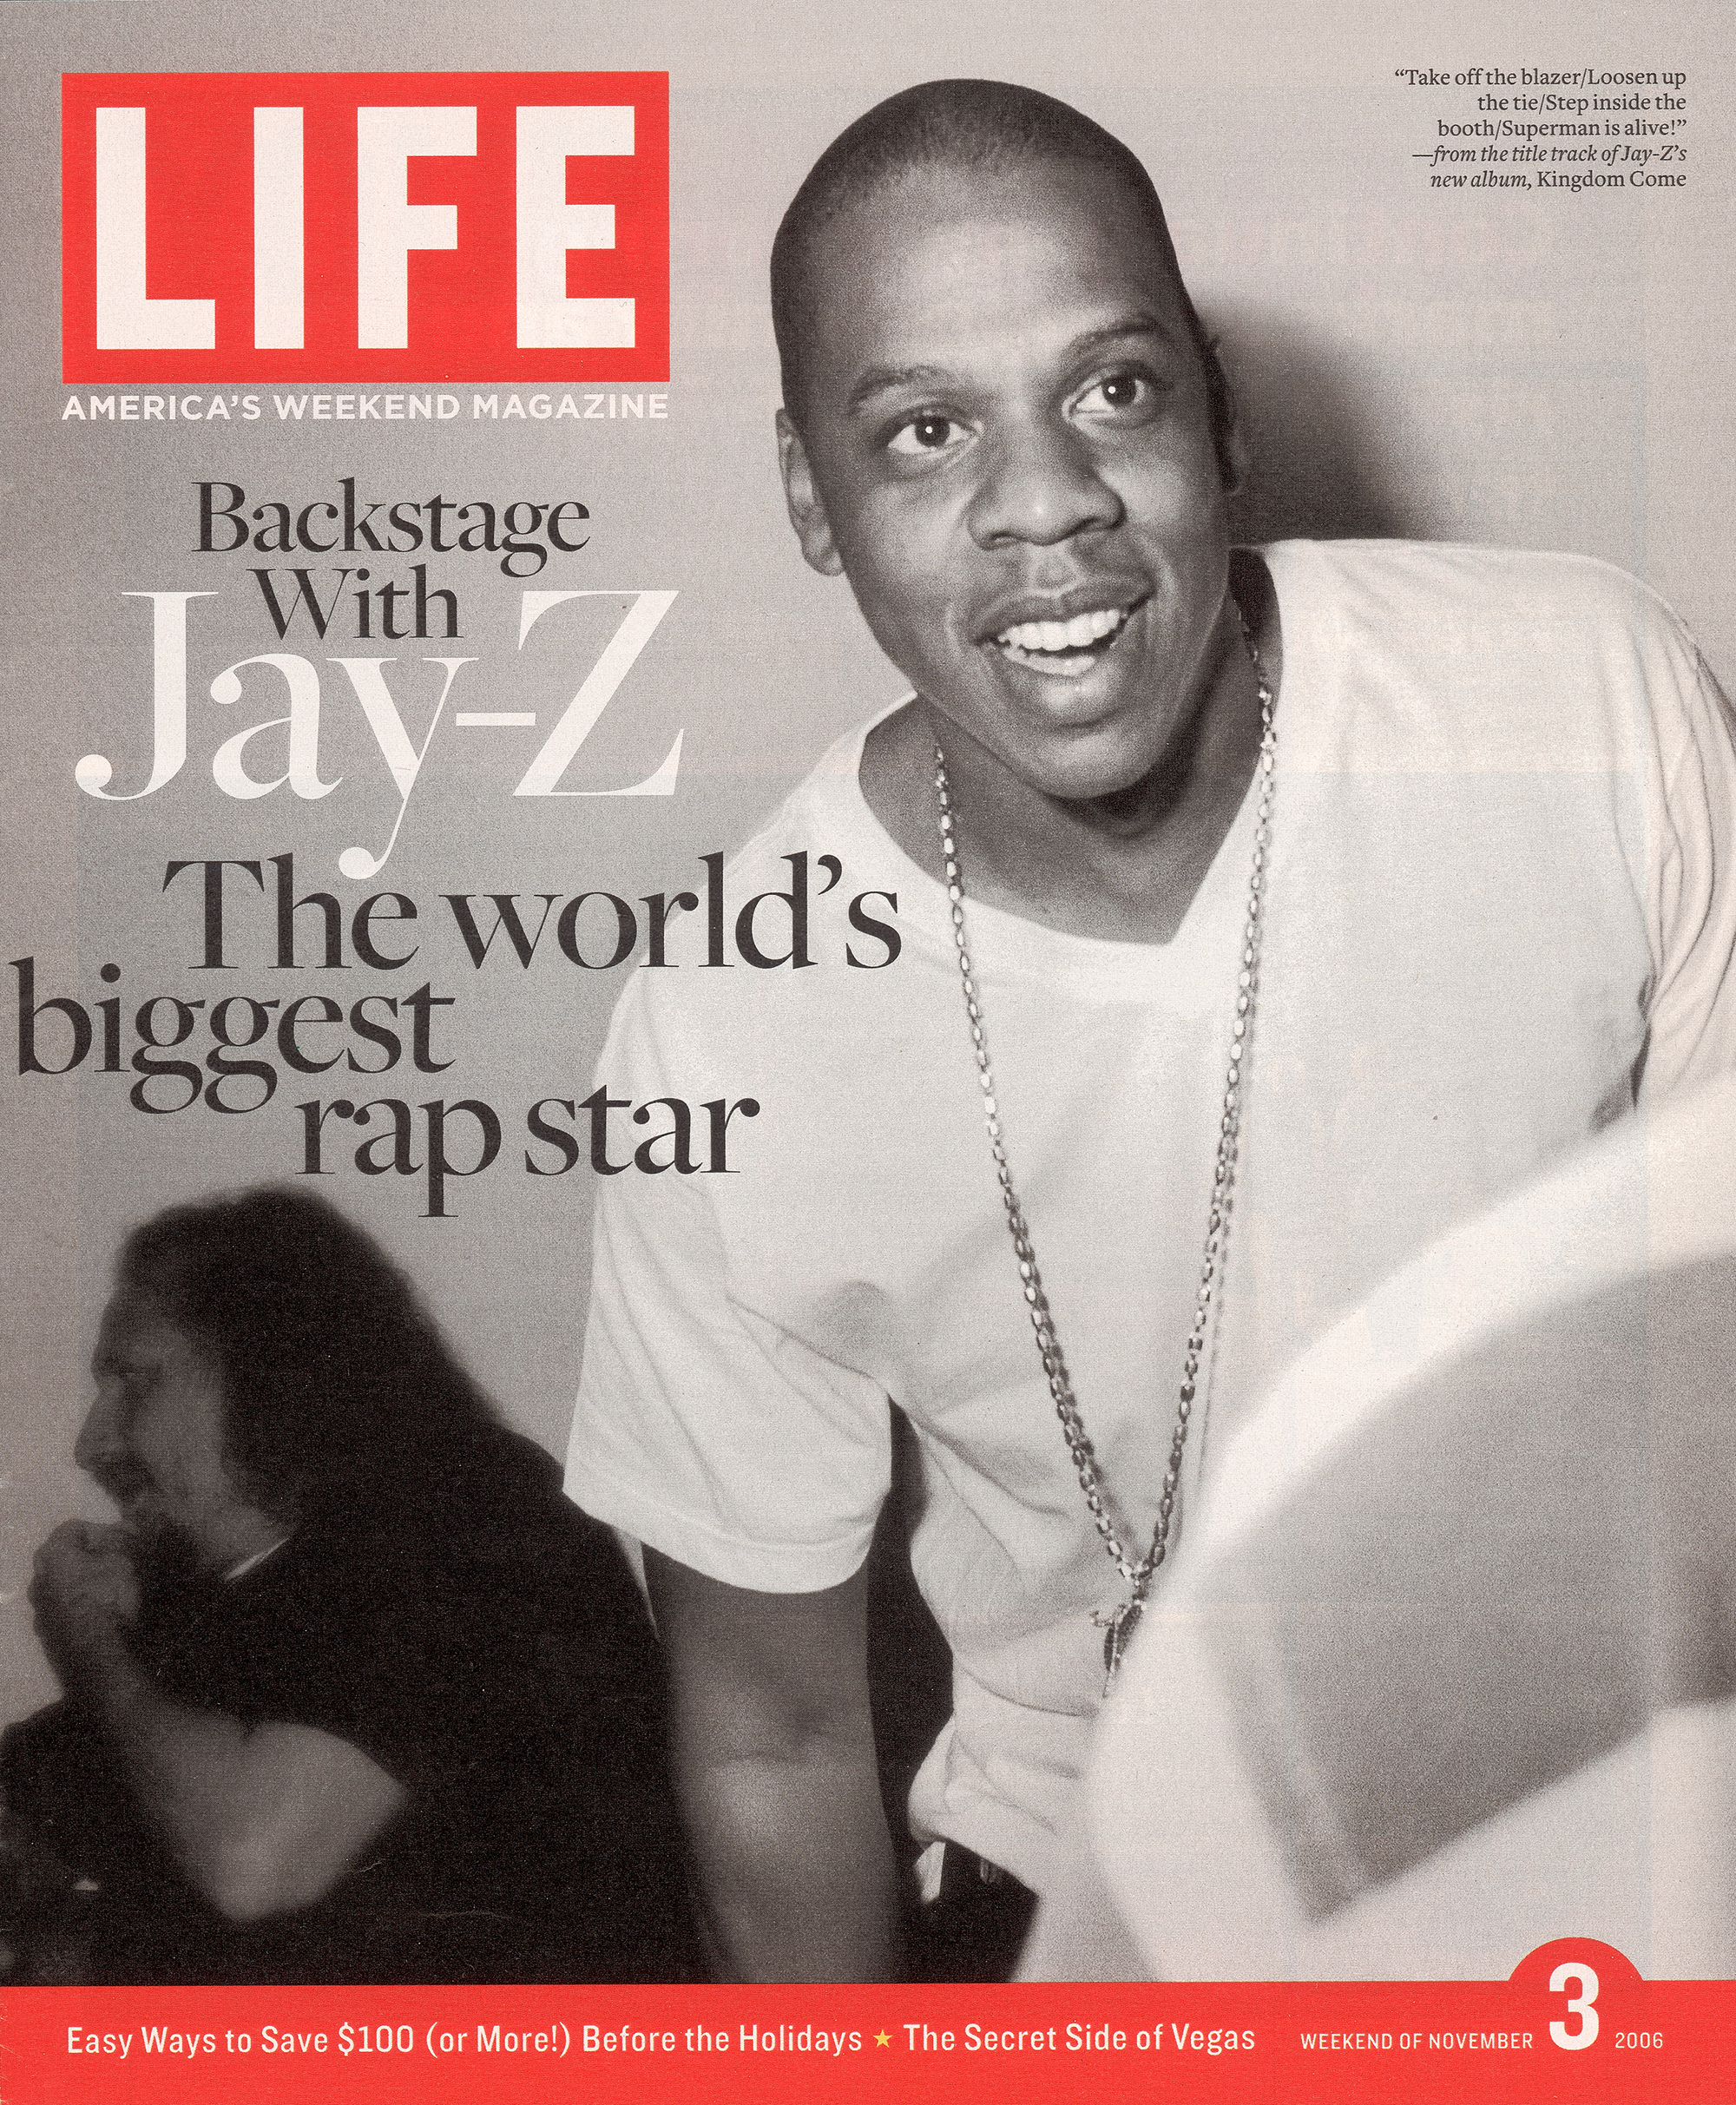 LIFE Cover 11-03-2006 of rapper Jay-Z.